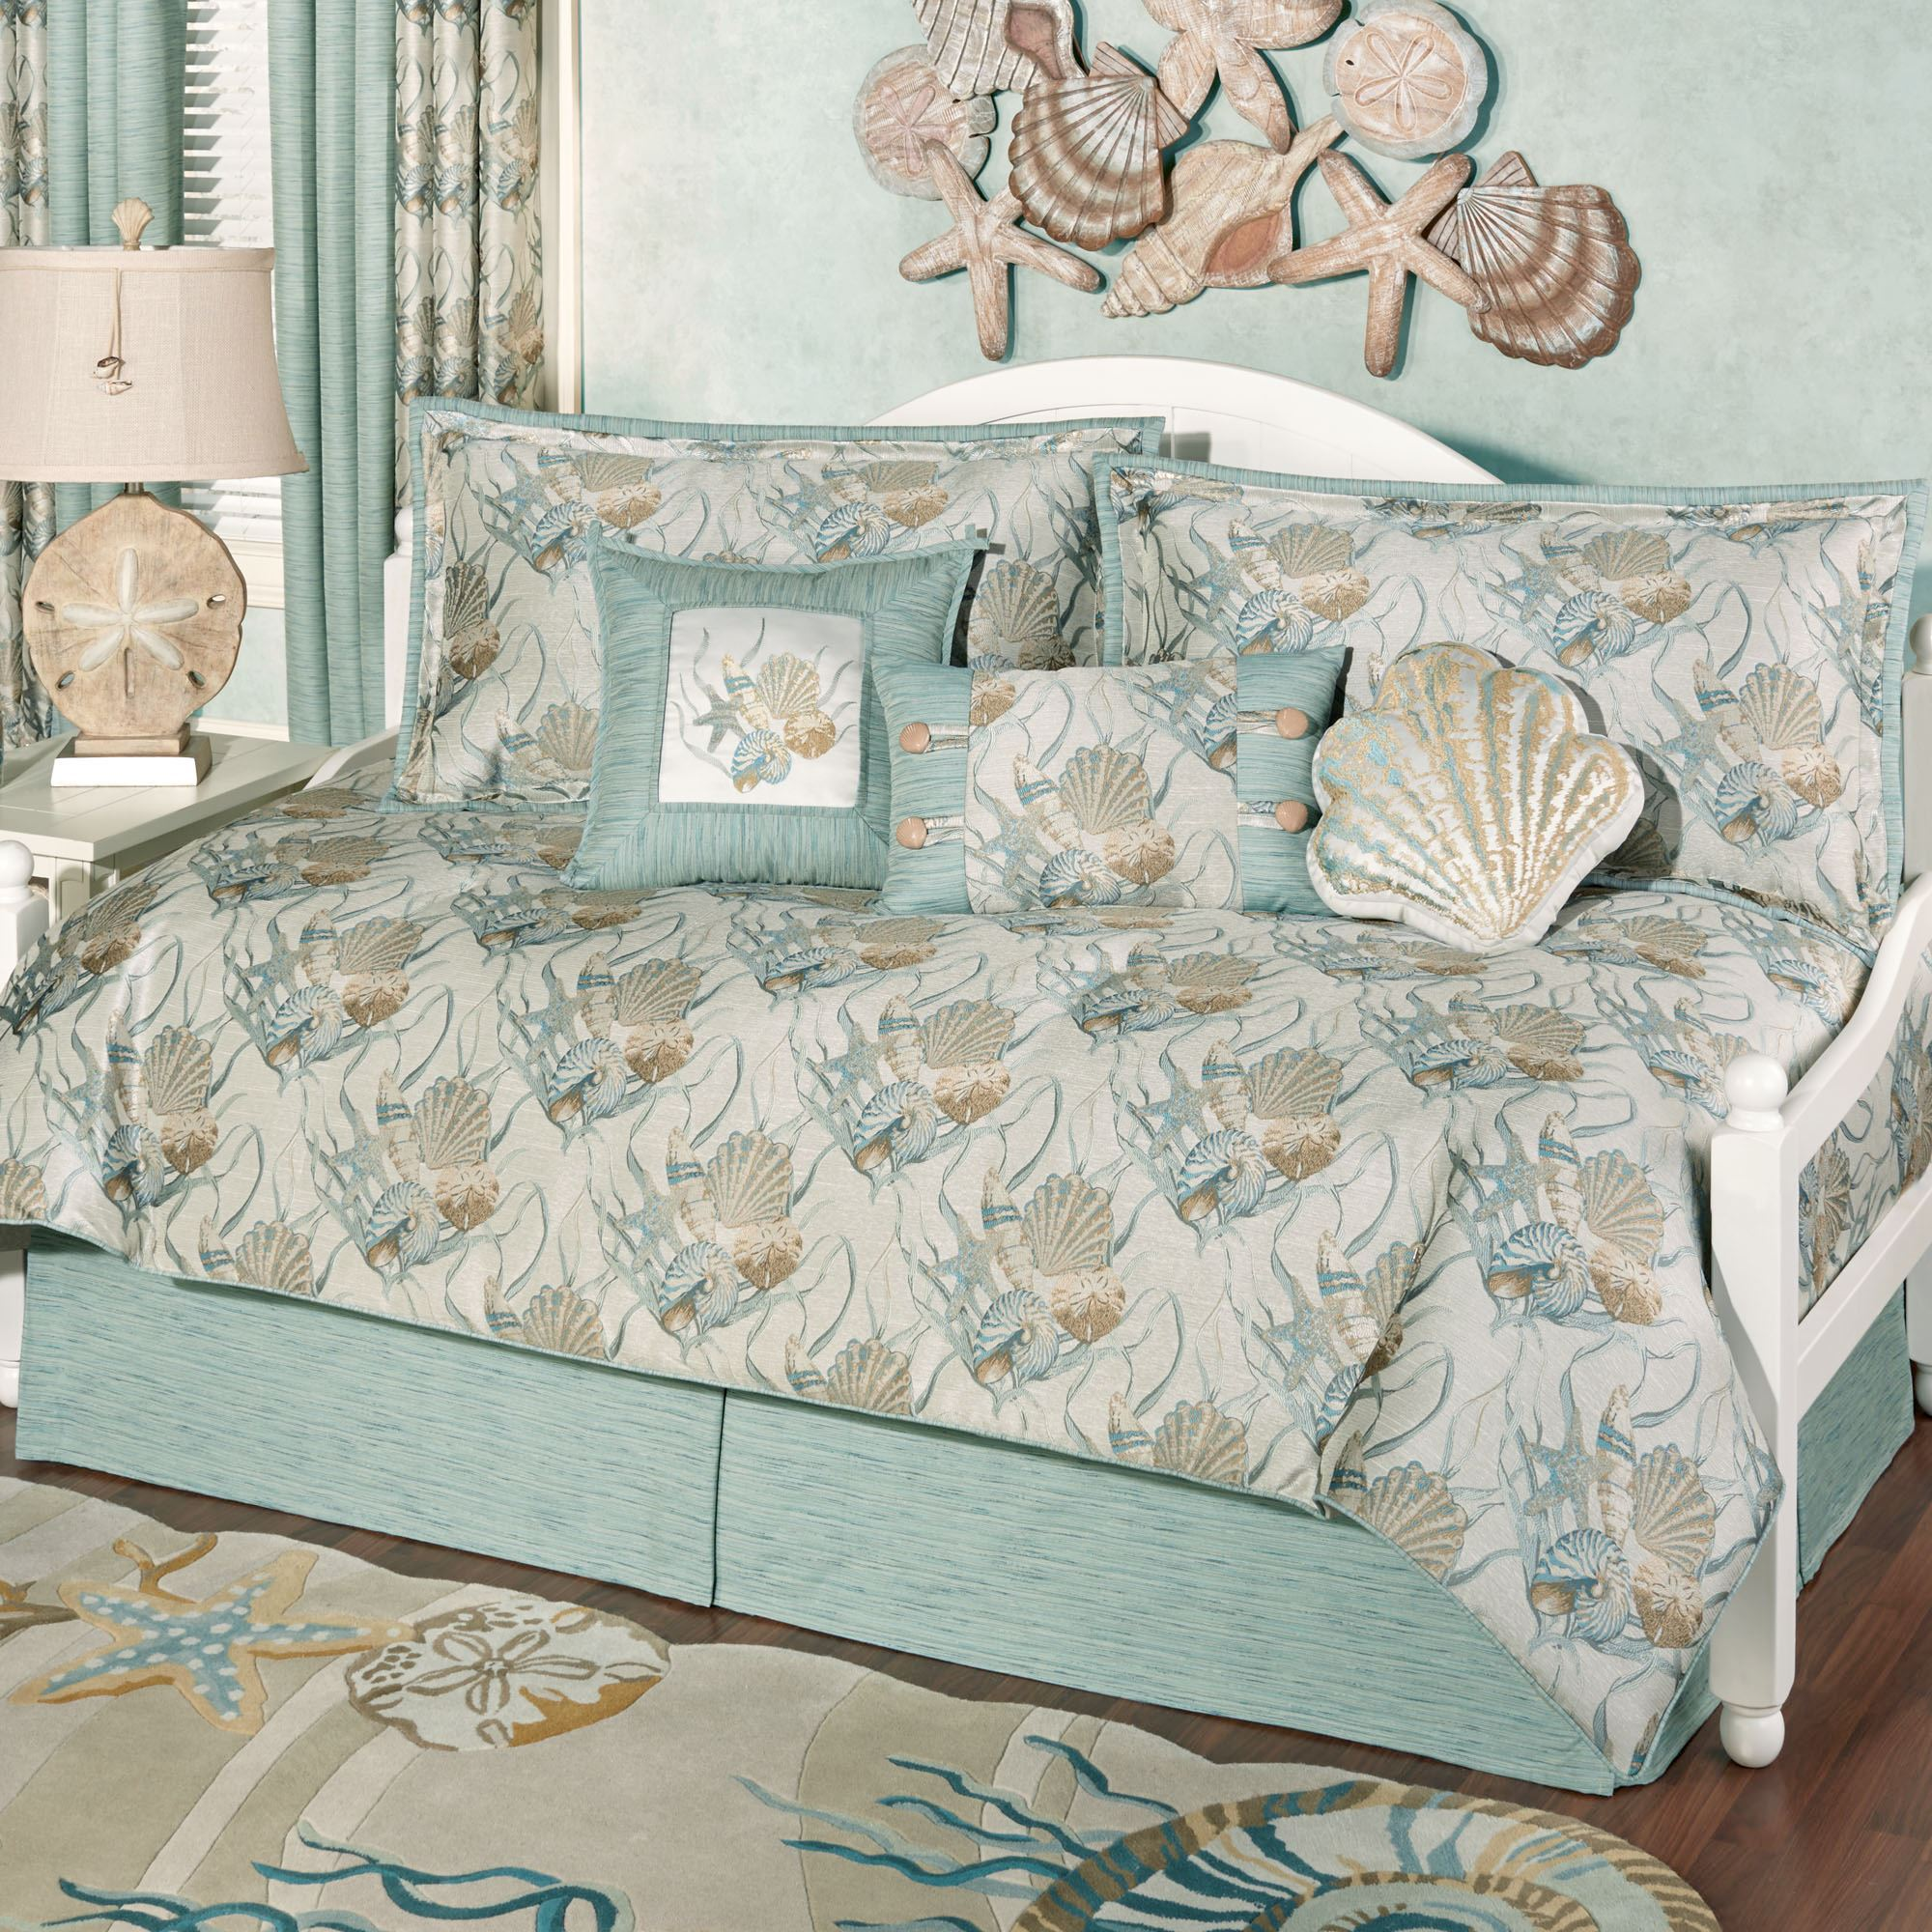 Coastal Dream Seashell Daybed Bedding Set